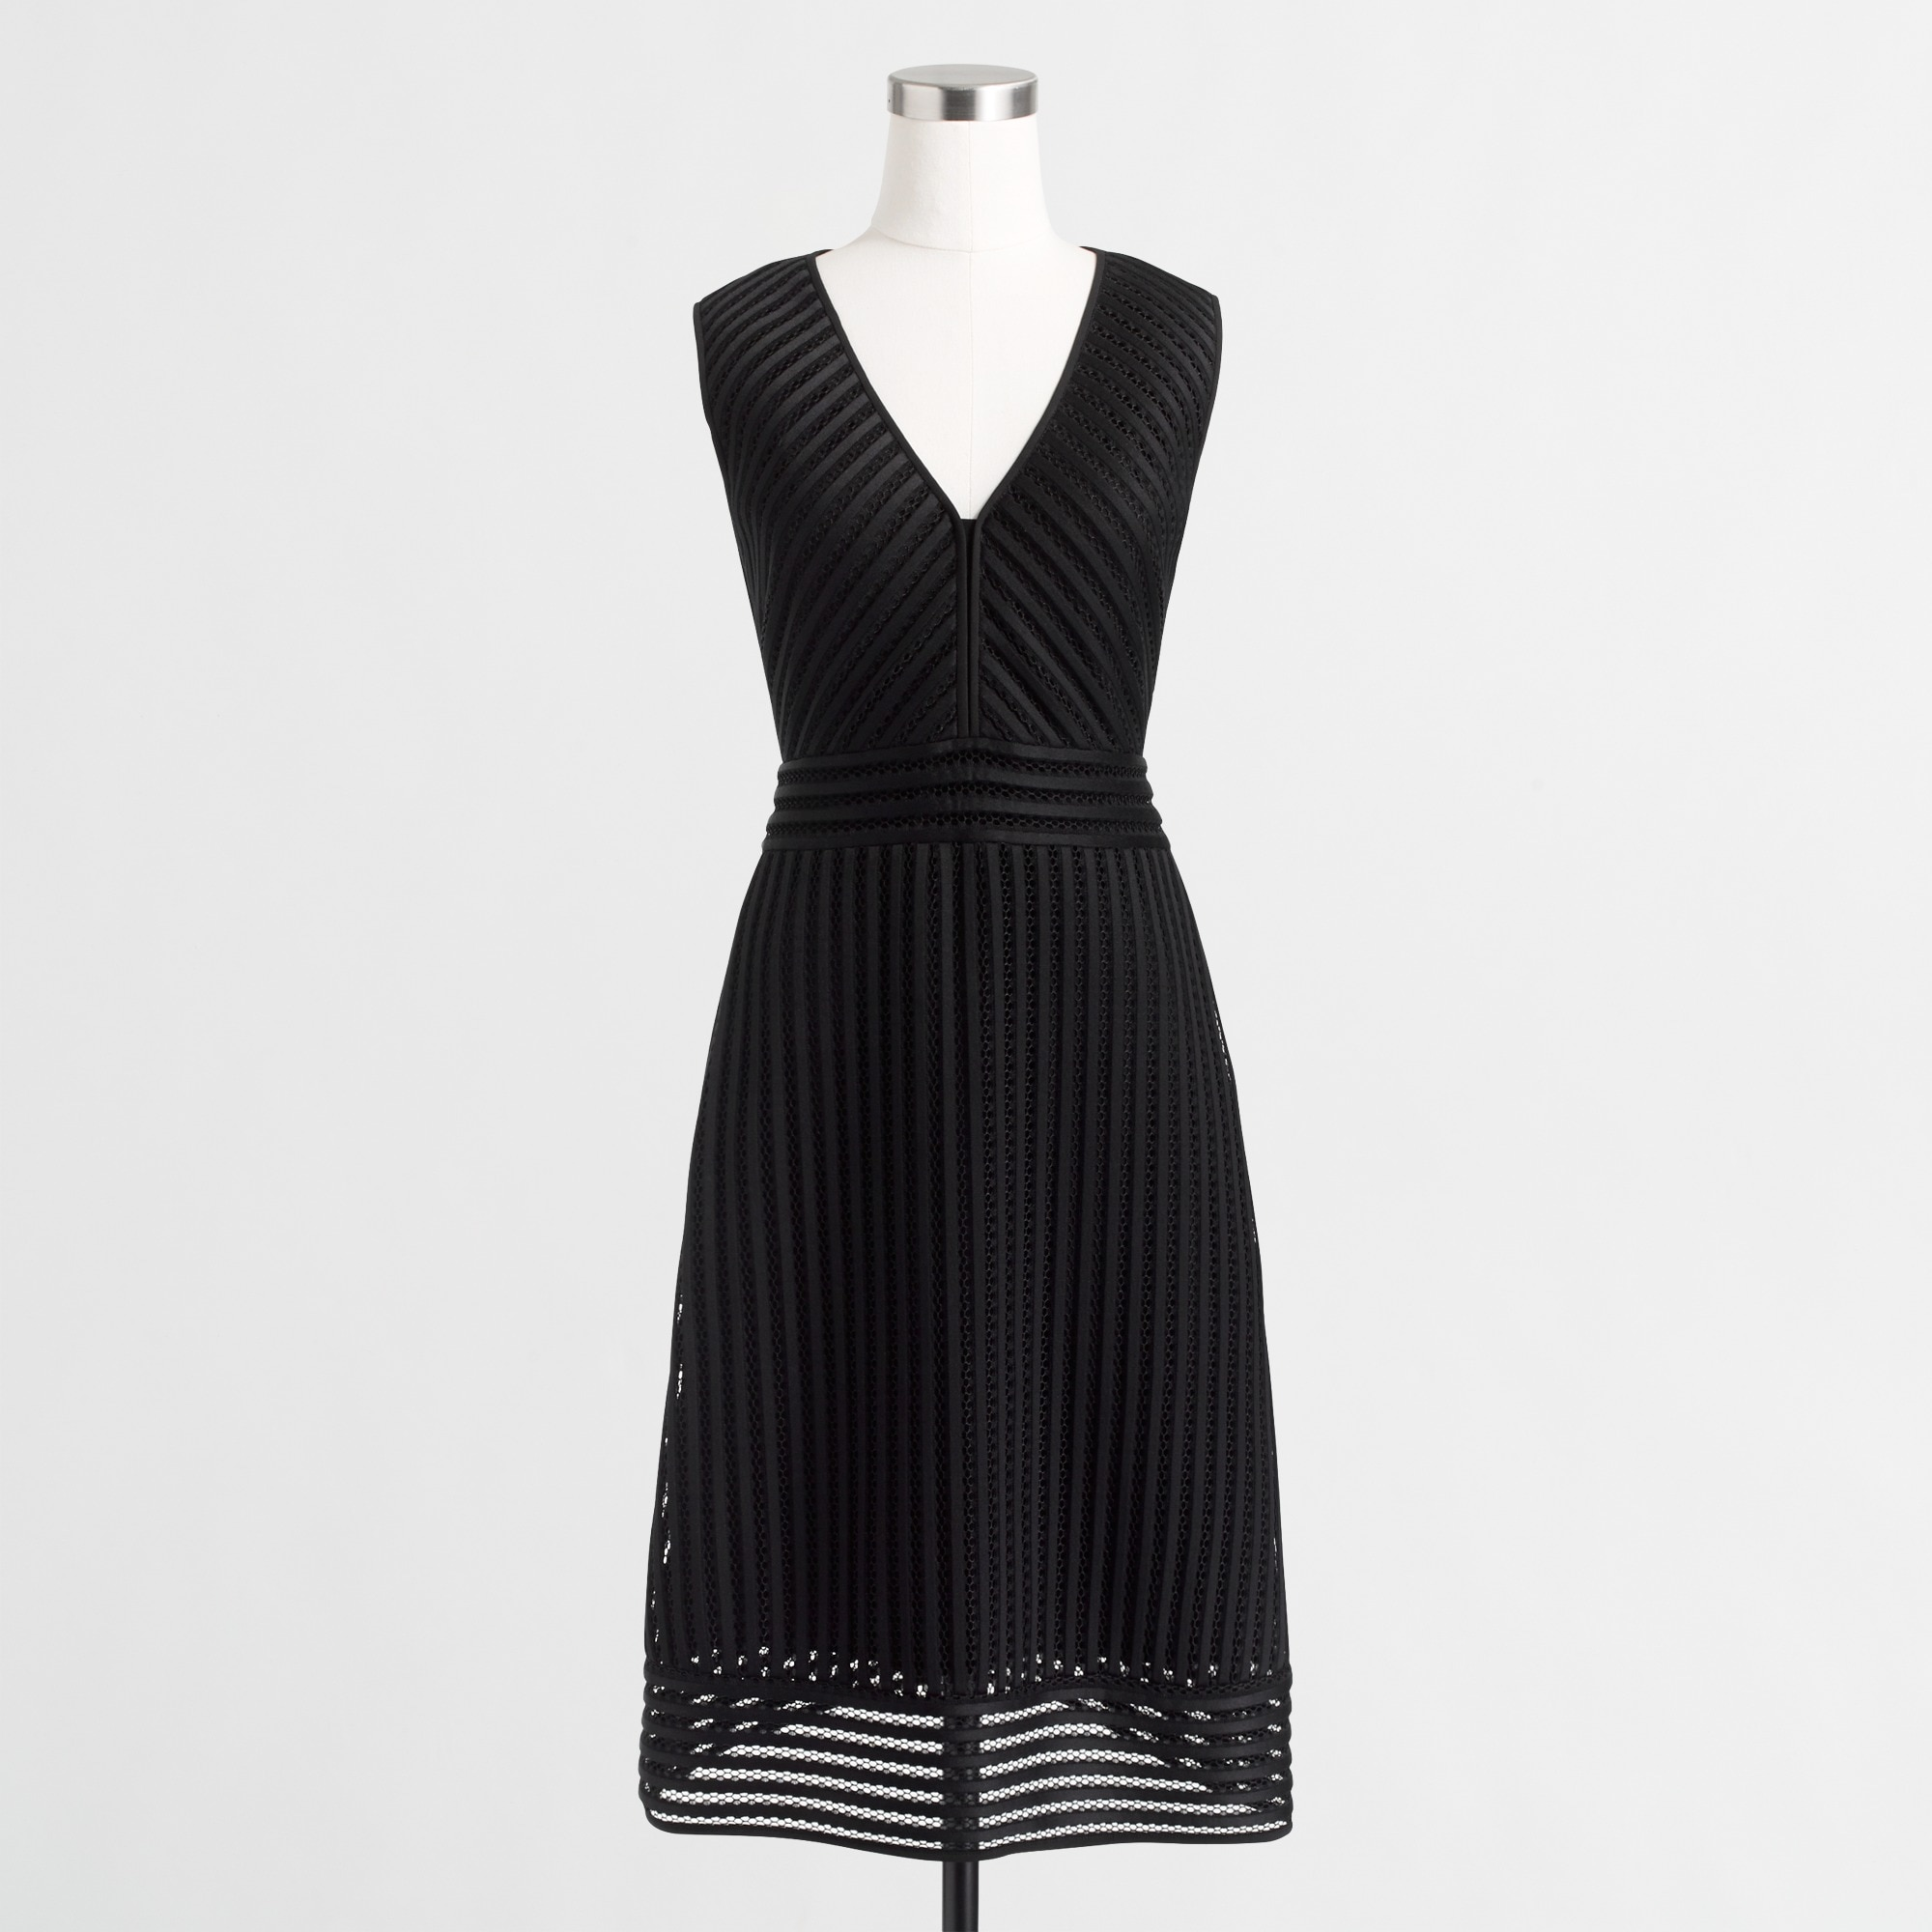 Image 1 for Striped eyelet dress